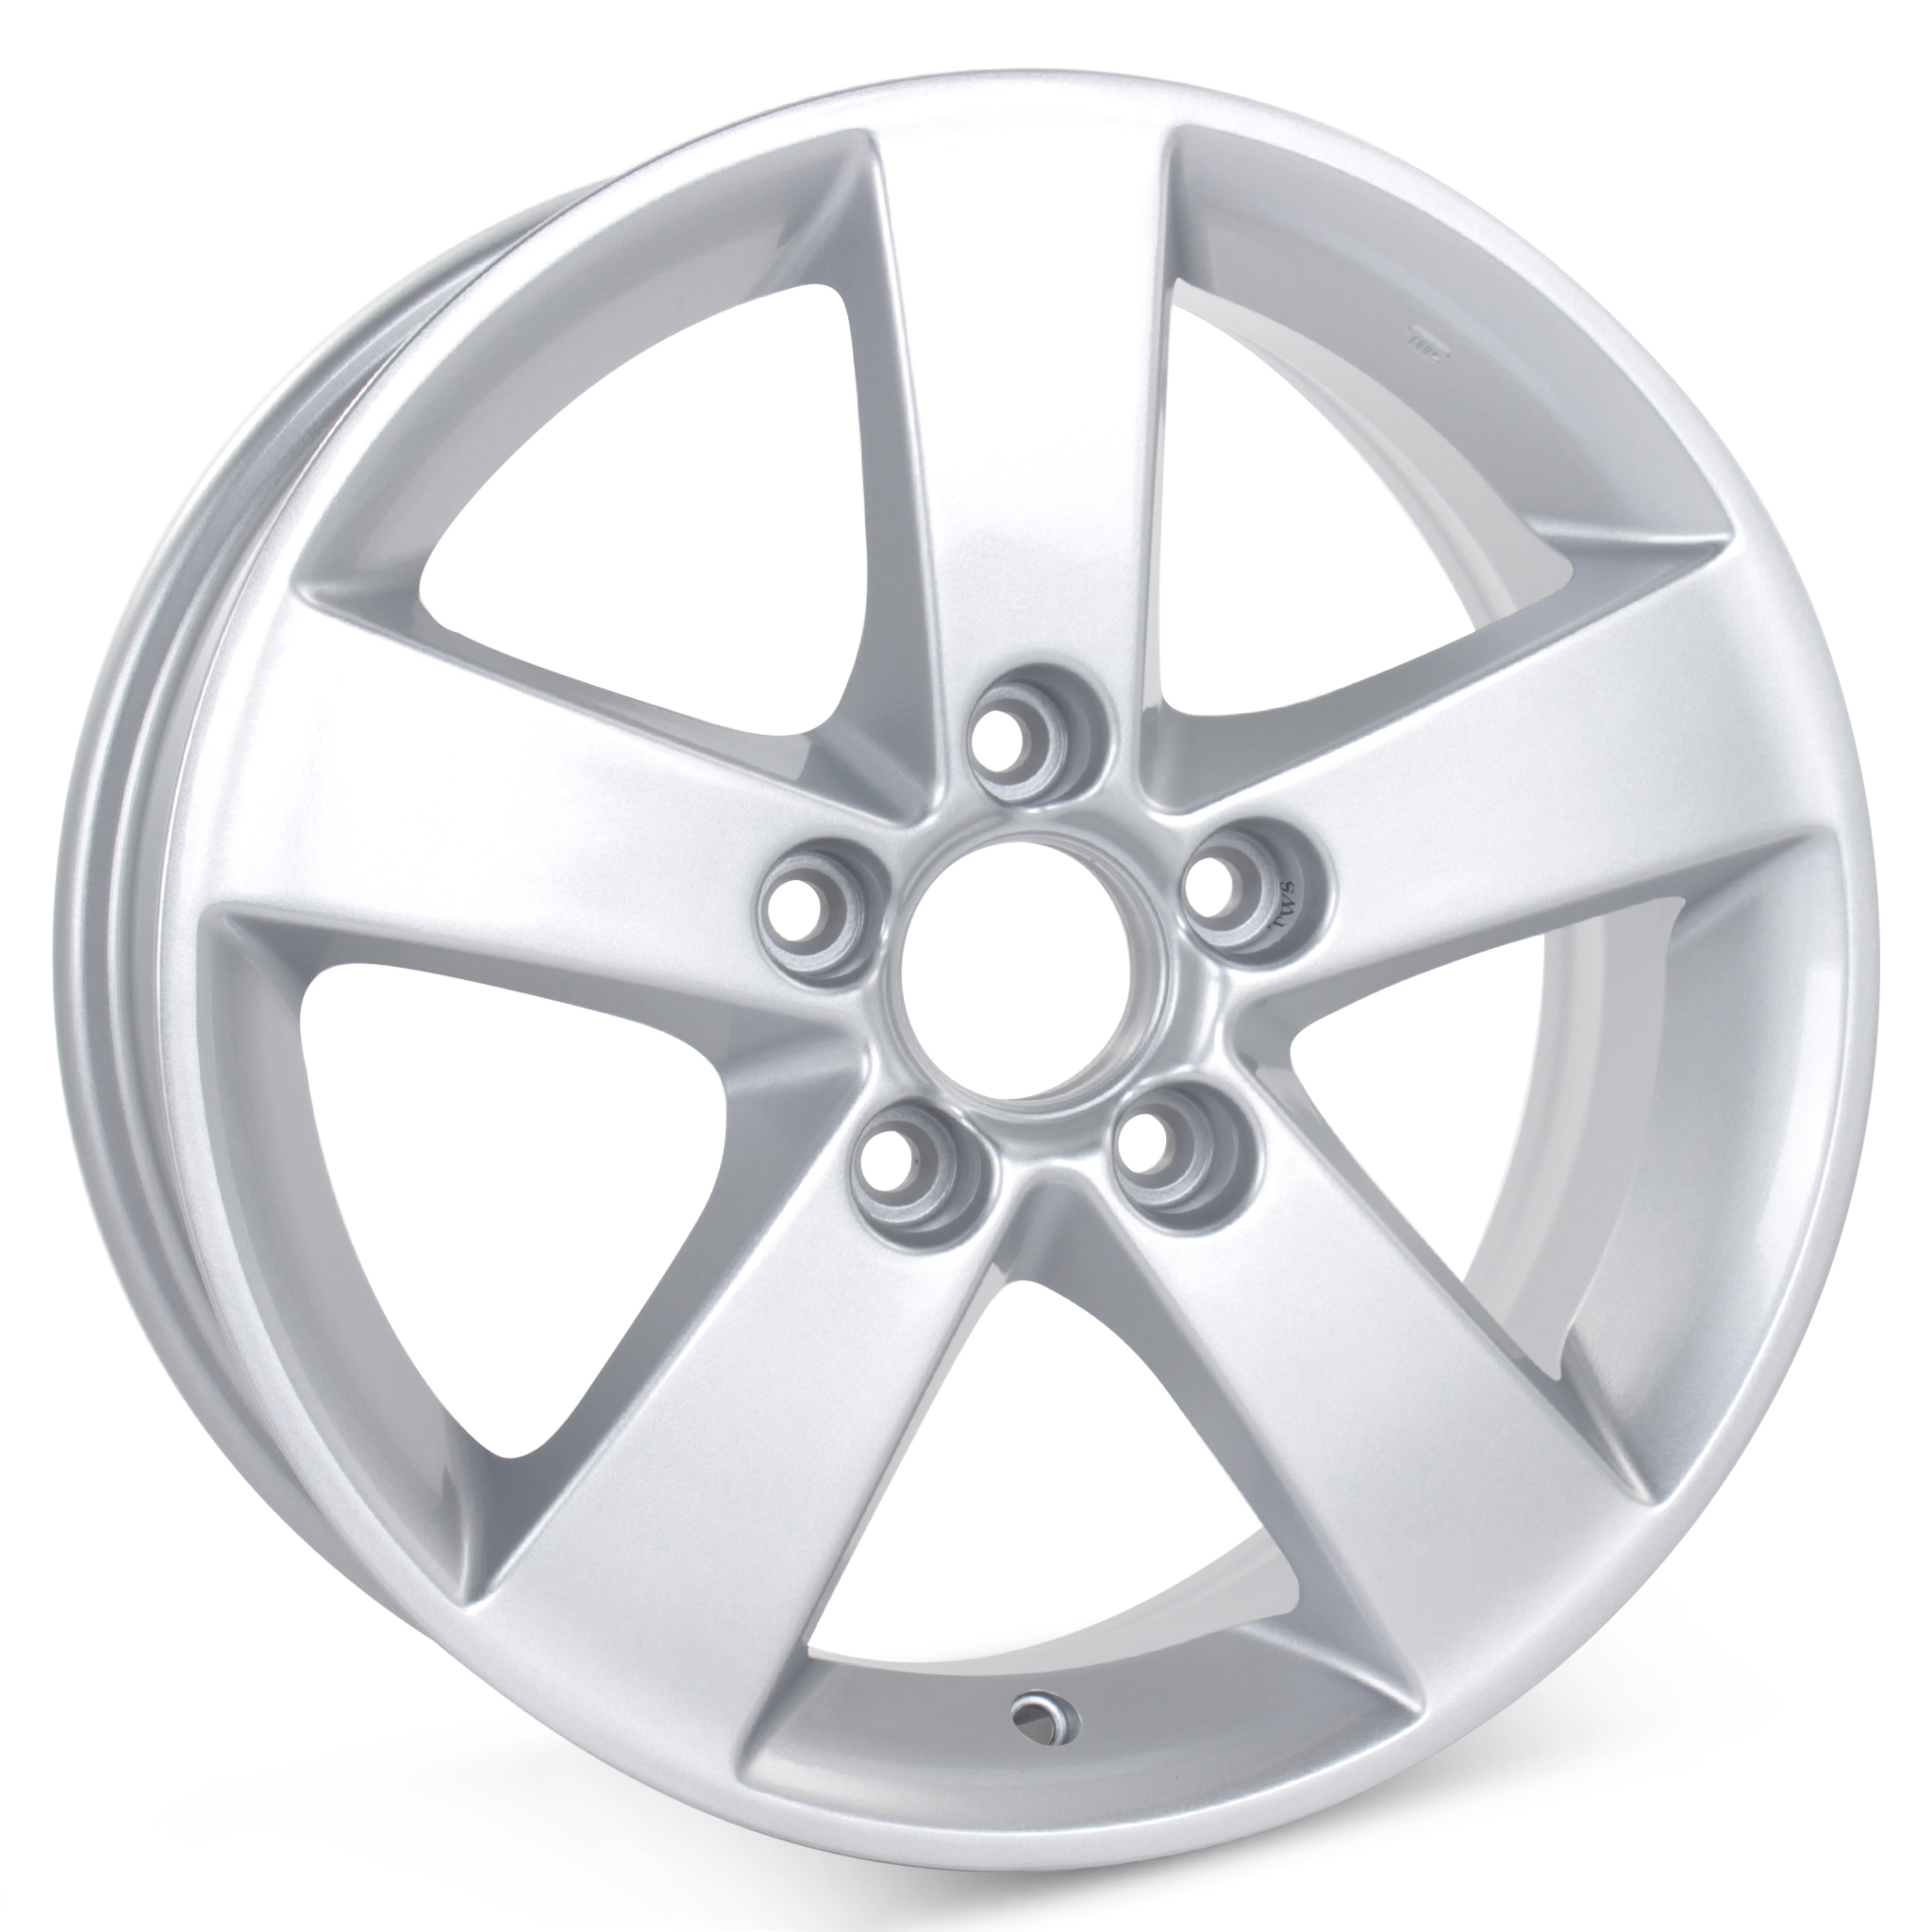 New Alloy 16 Quot X 6 5 Quot Honda Civic Wheel 2006 2007 2008 2009